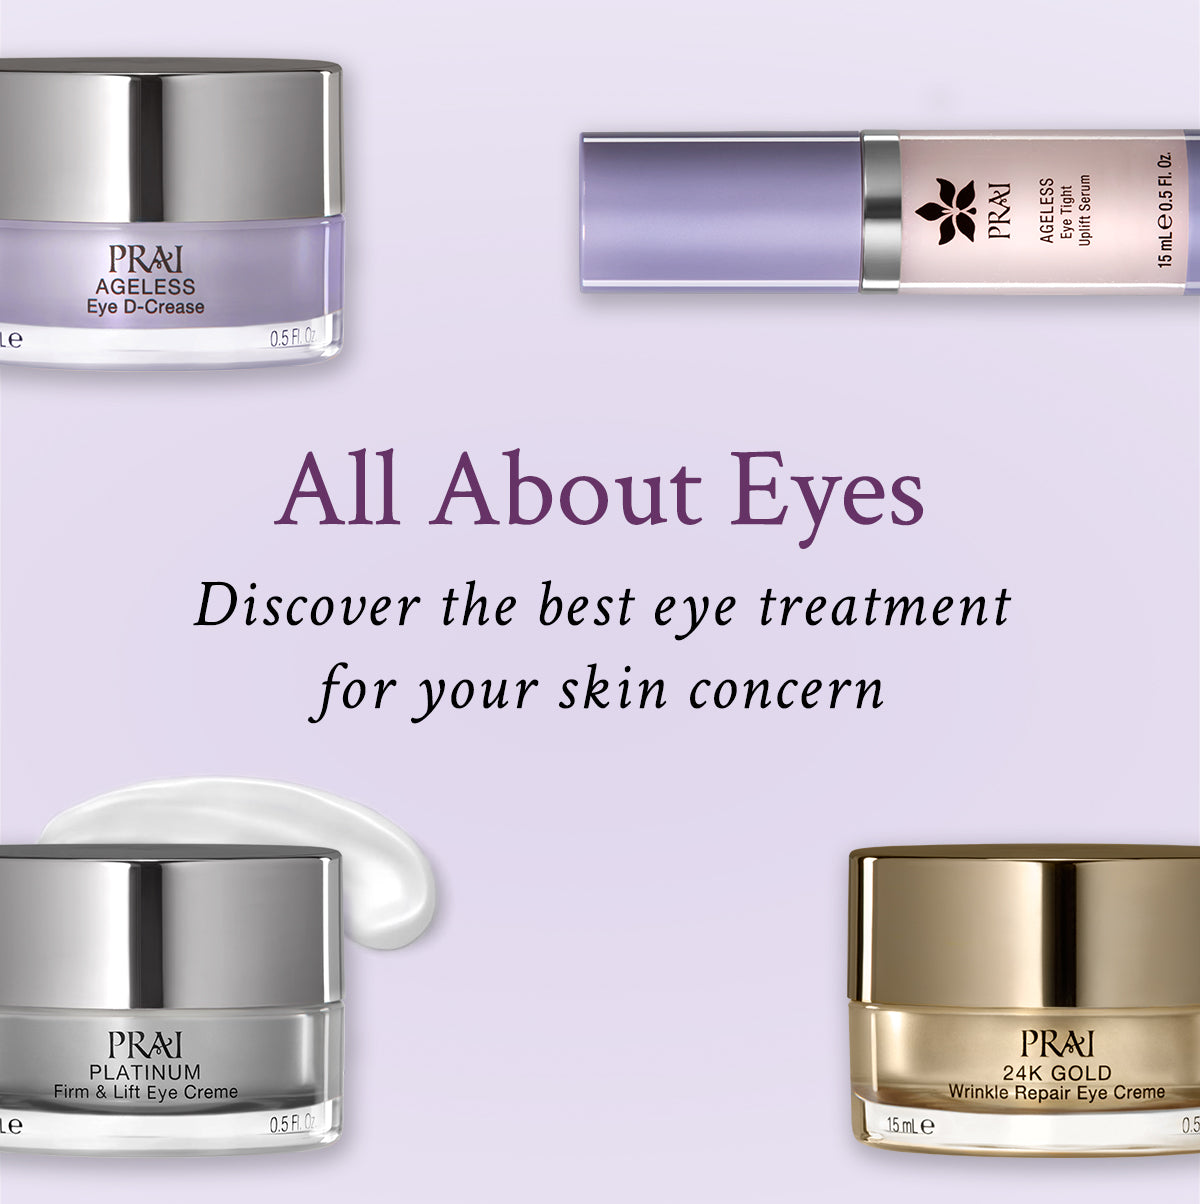 PRAI Beauty Eye Essentials